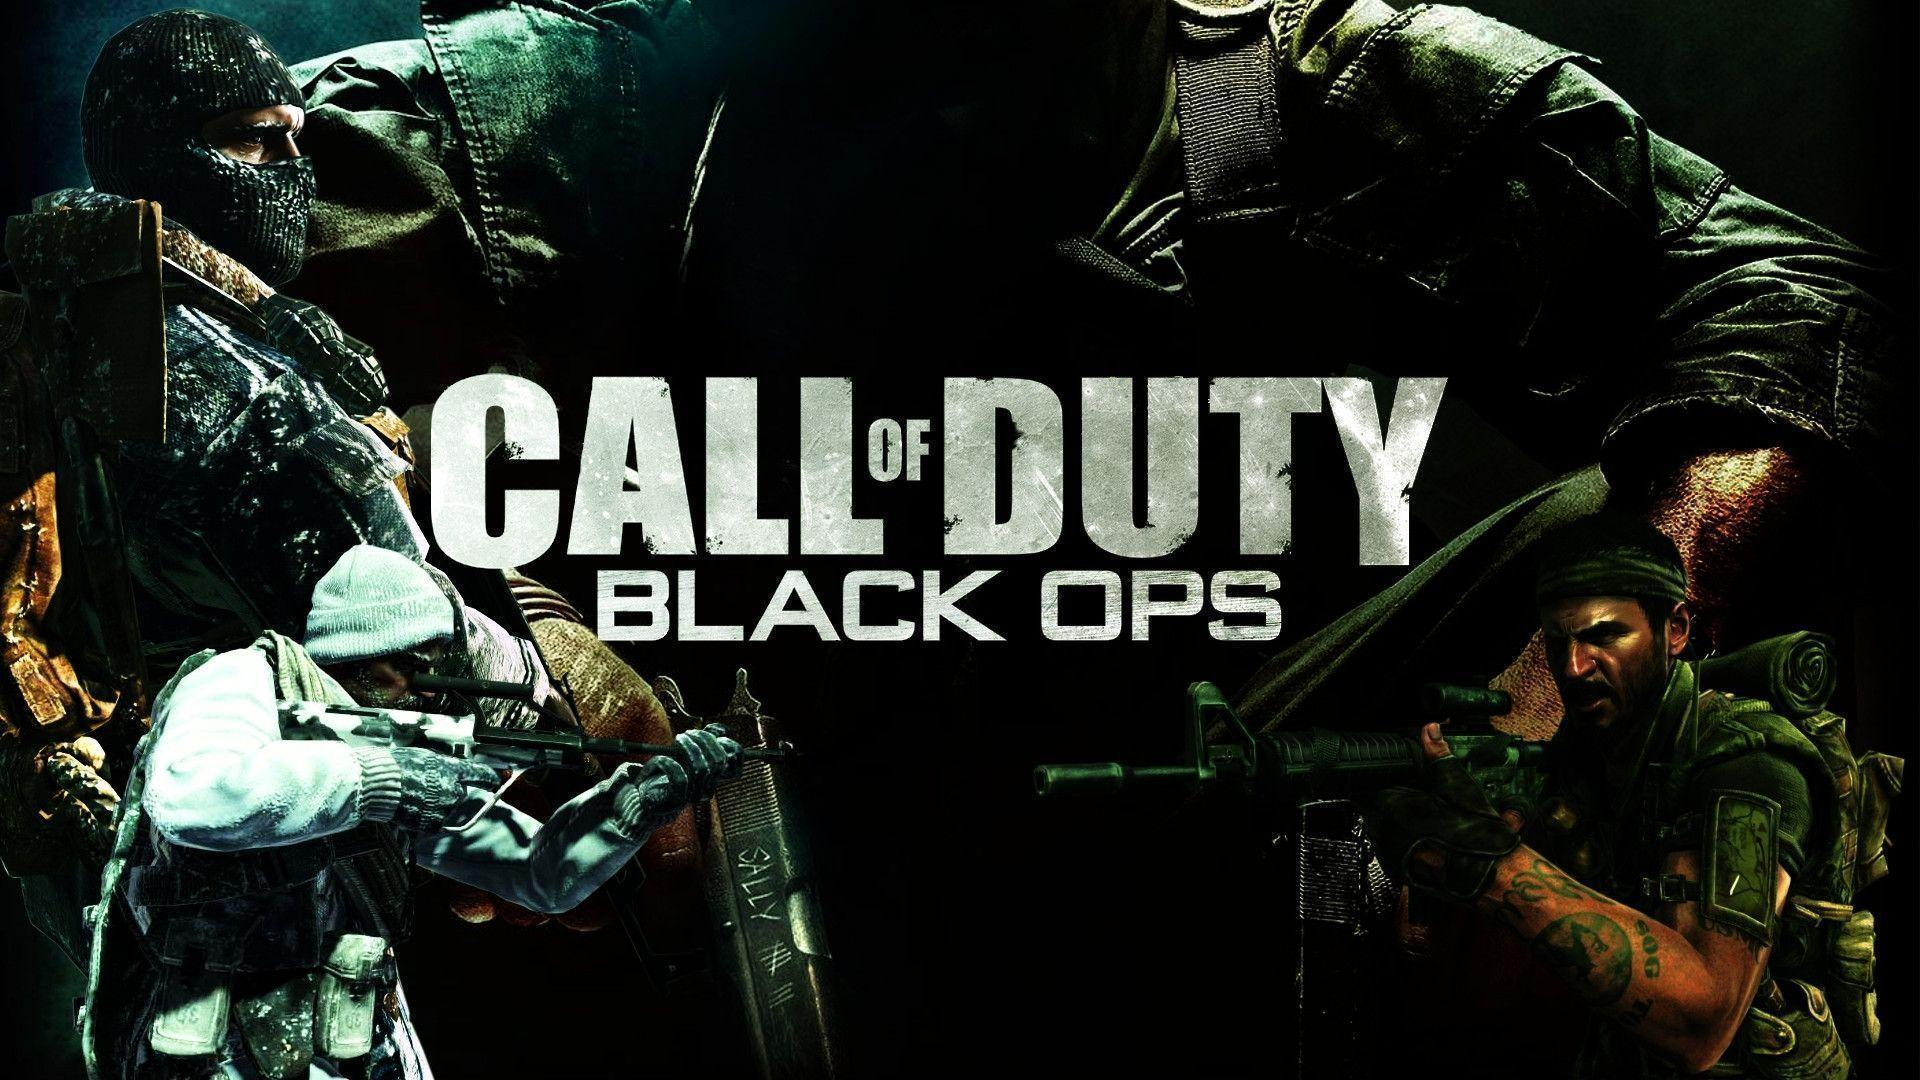 Call Of Duty Black Ops Xbox wallpapers